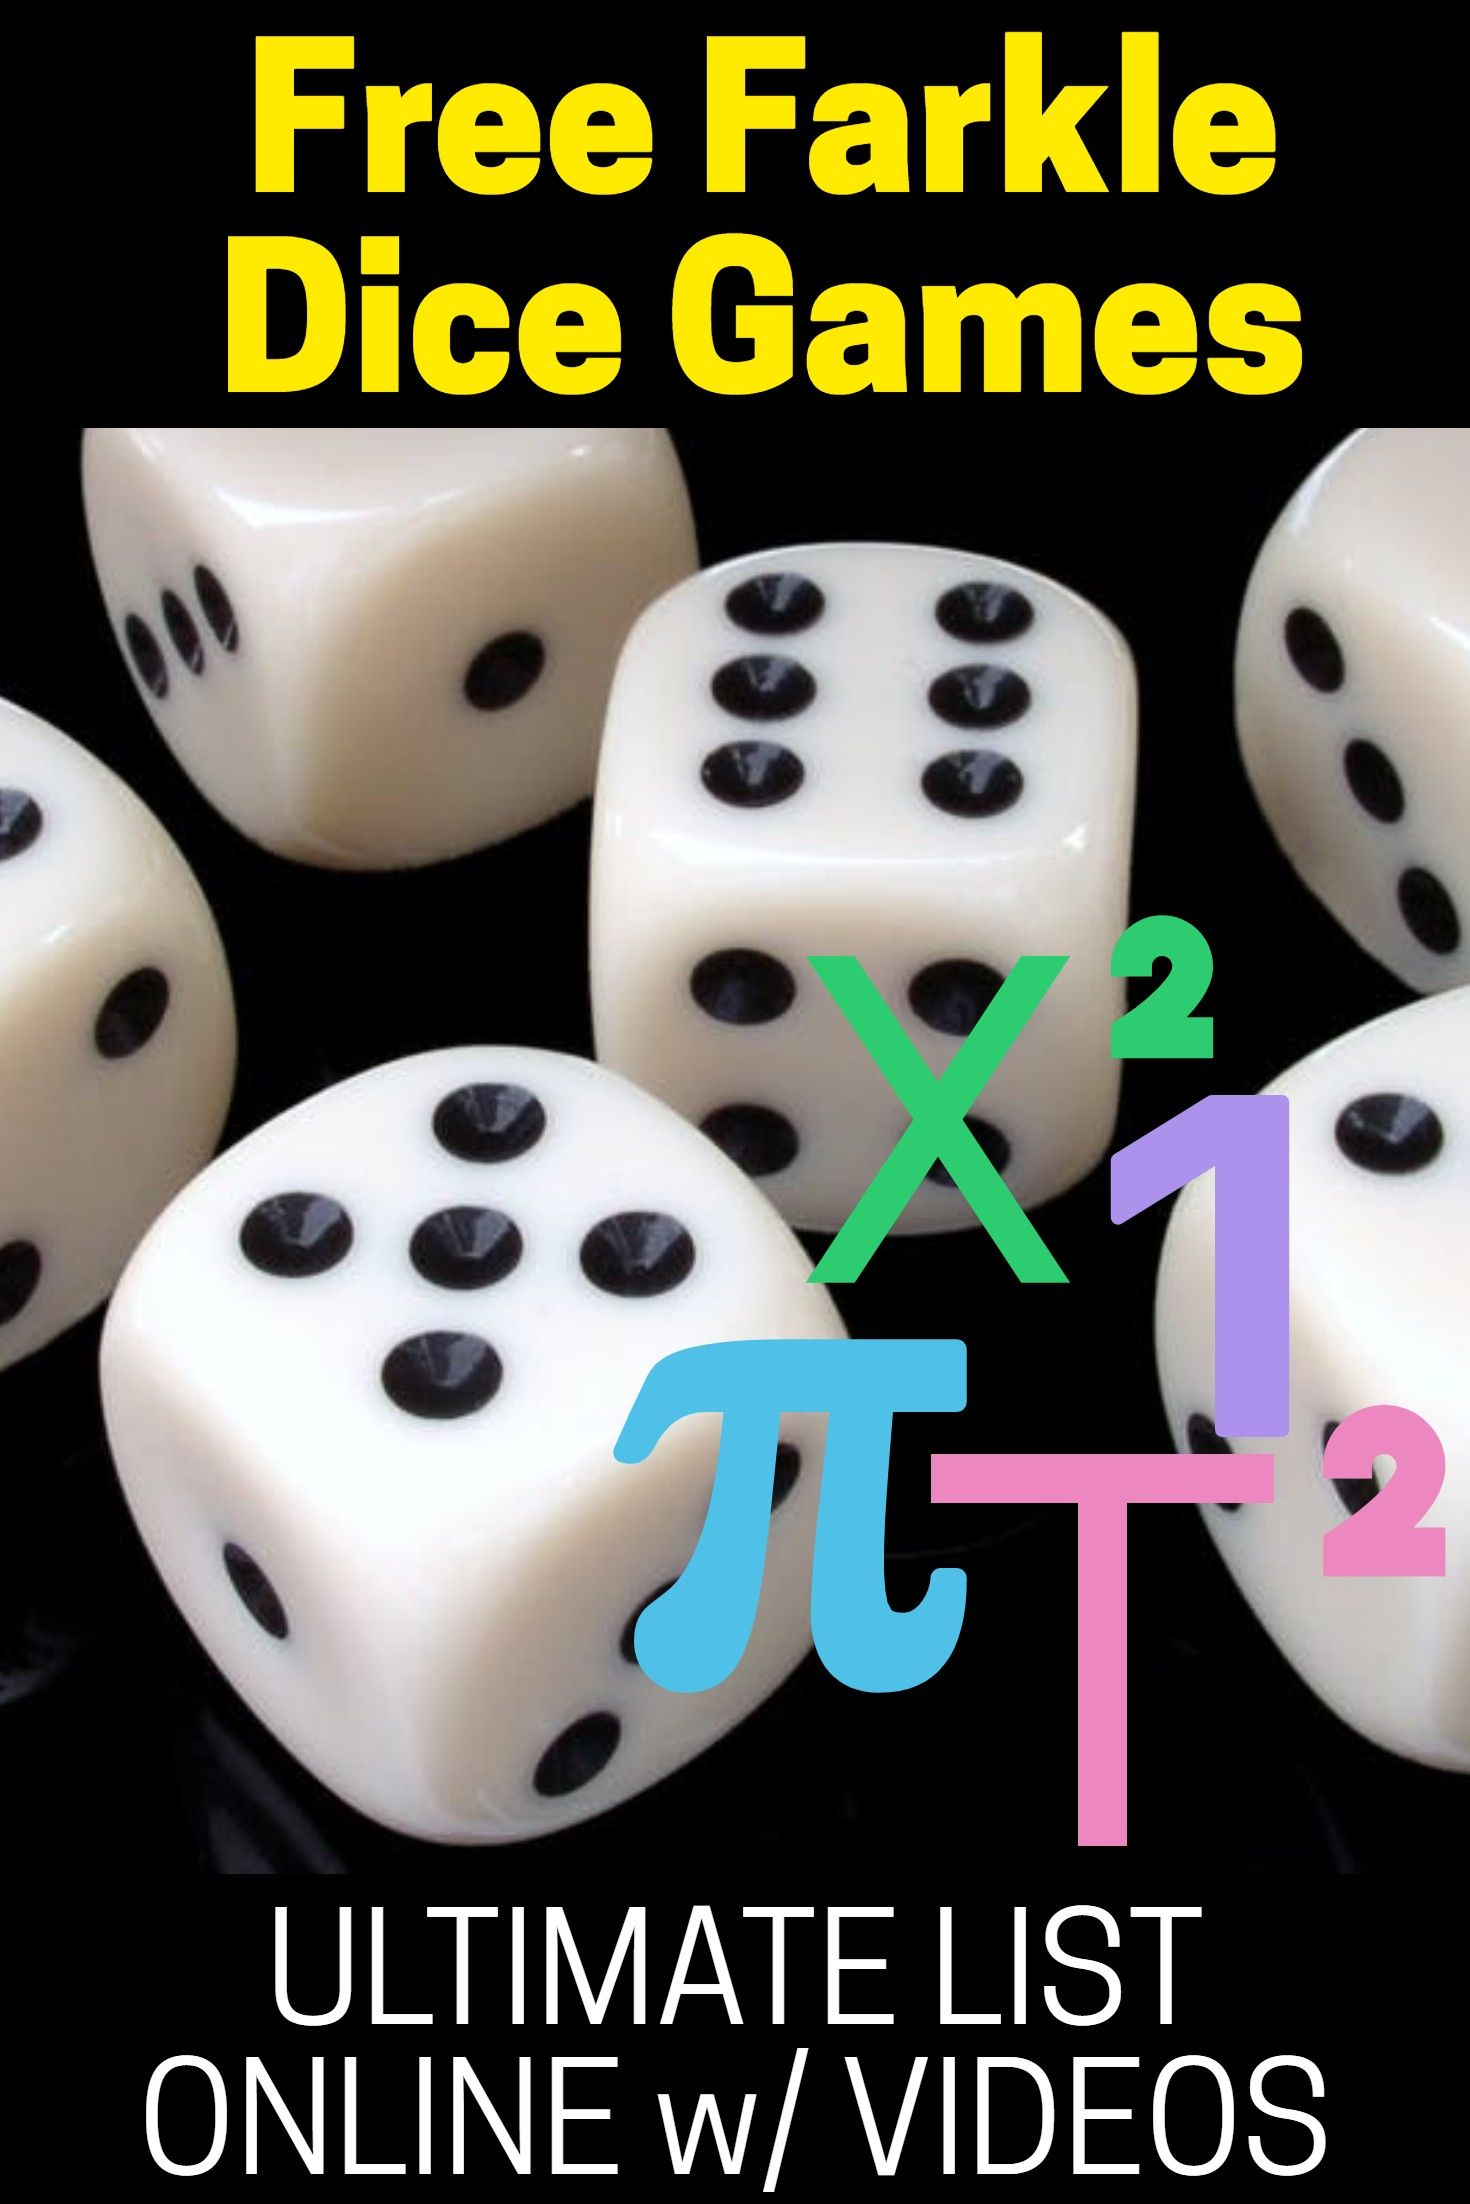 Free Farkle Dice Games in 2020 Dice games, Games, Games